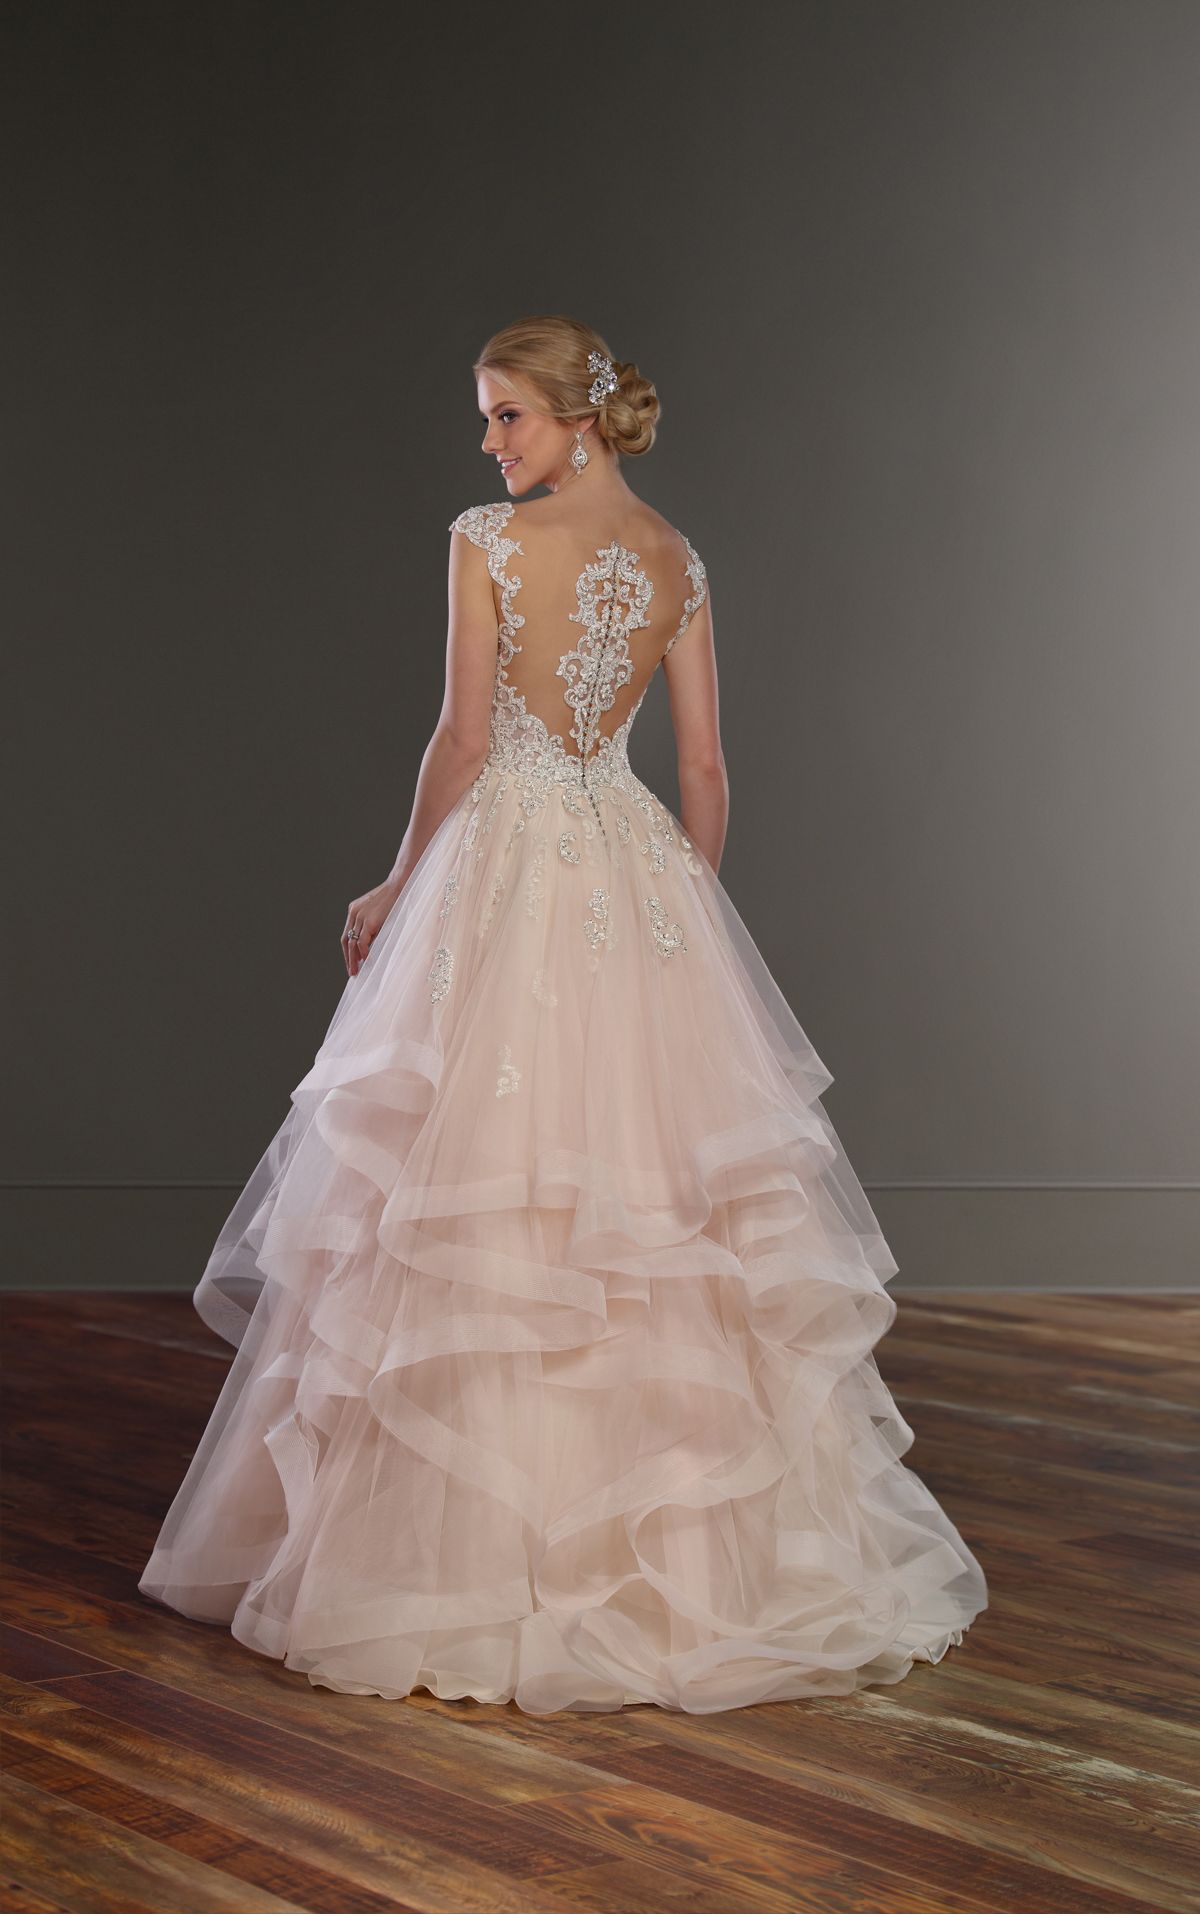 Princess Cut Wedding Dress with Layered Tulle Skirt | Princess ...